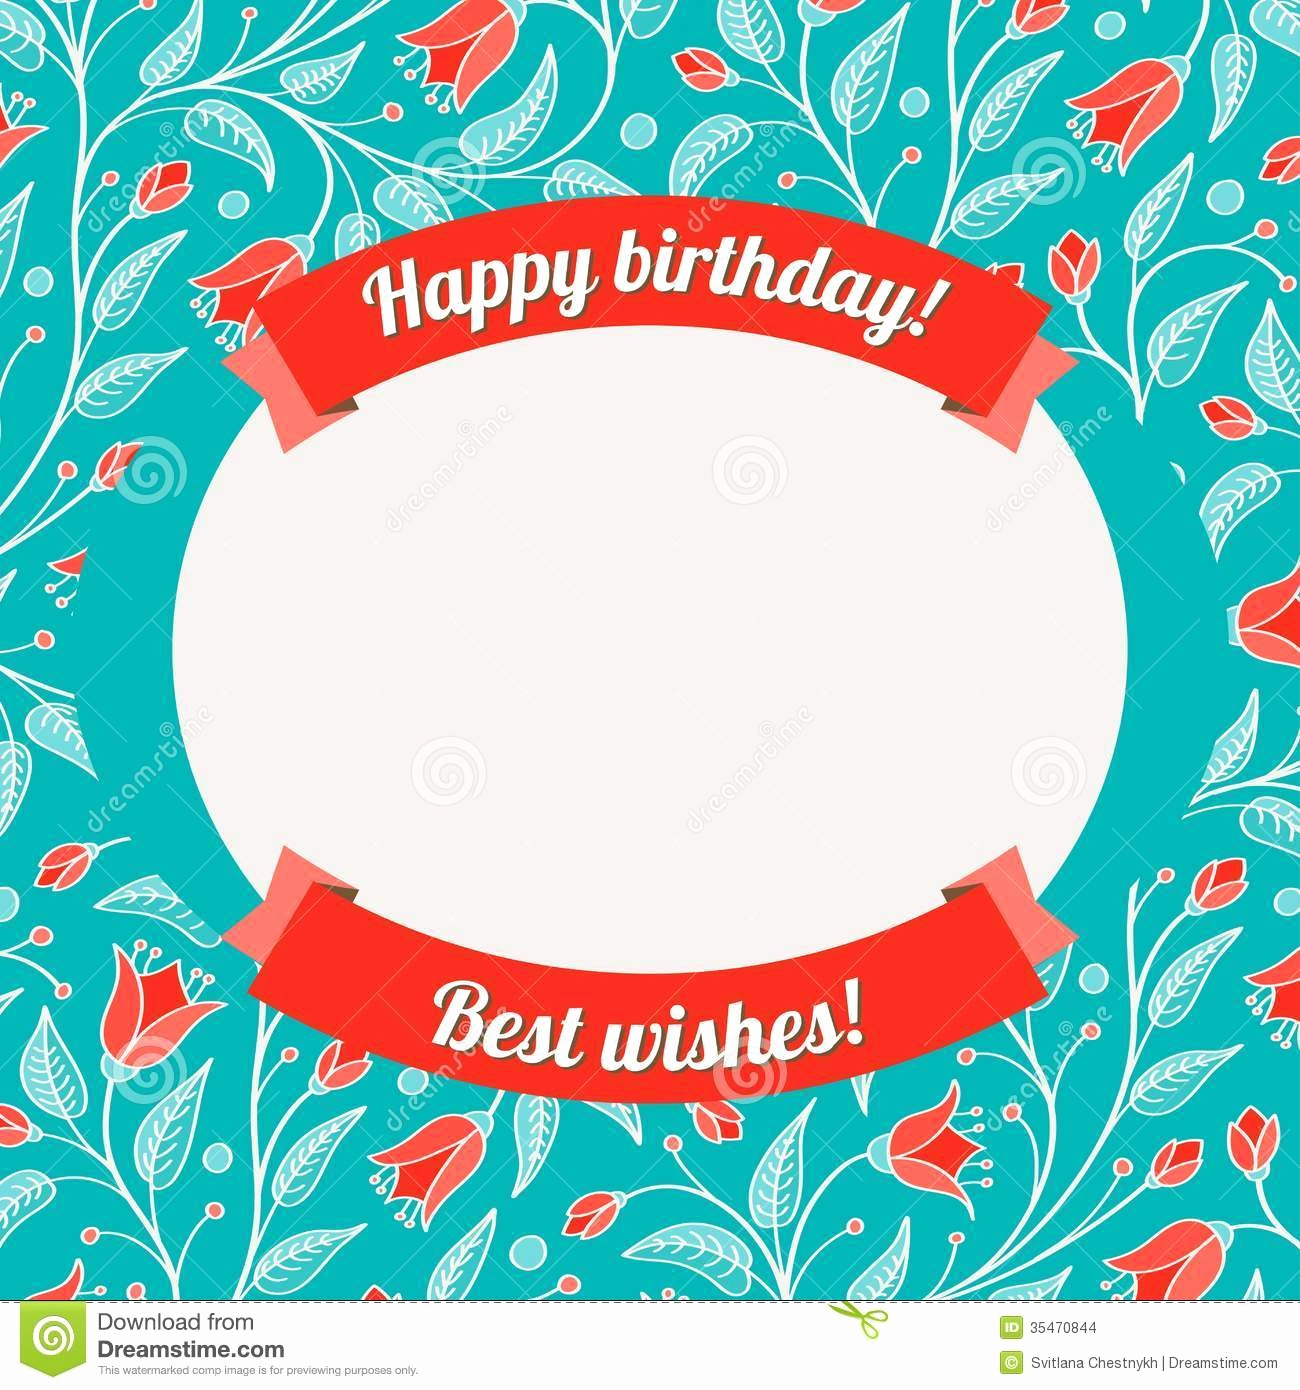 Template for A Birthday Card Elegant Template for Greeting Card Invitation Stock Vector